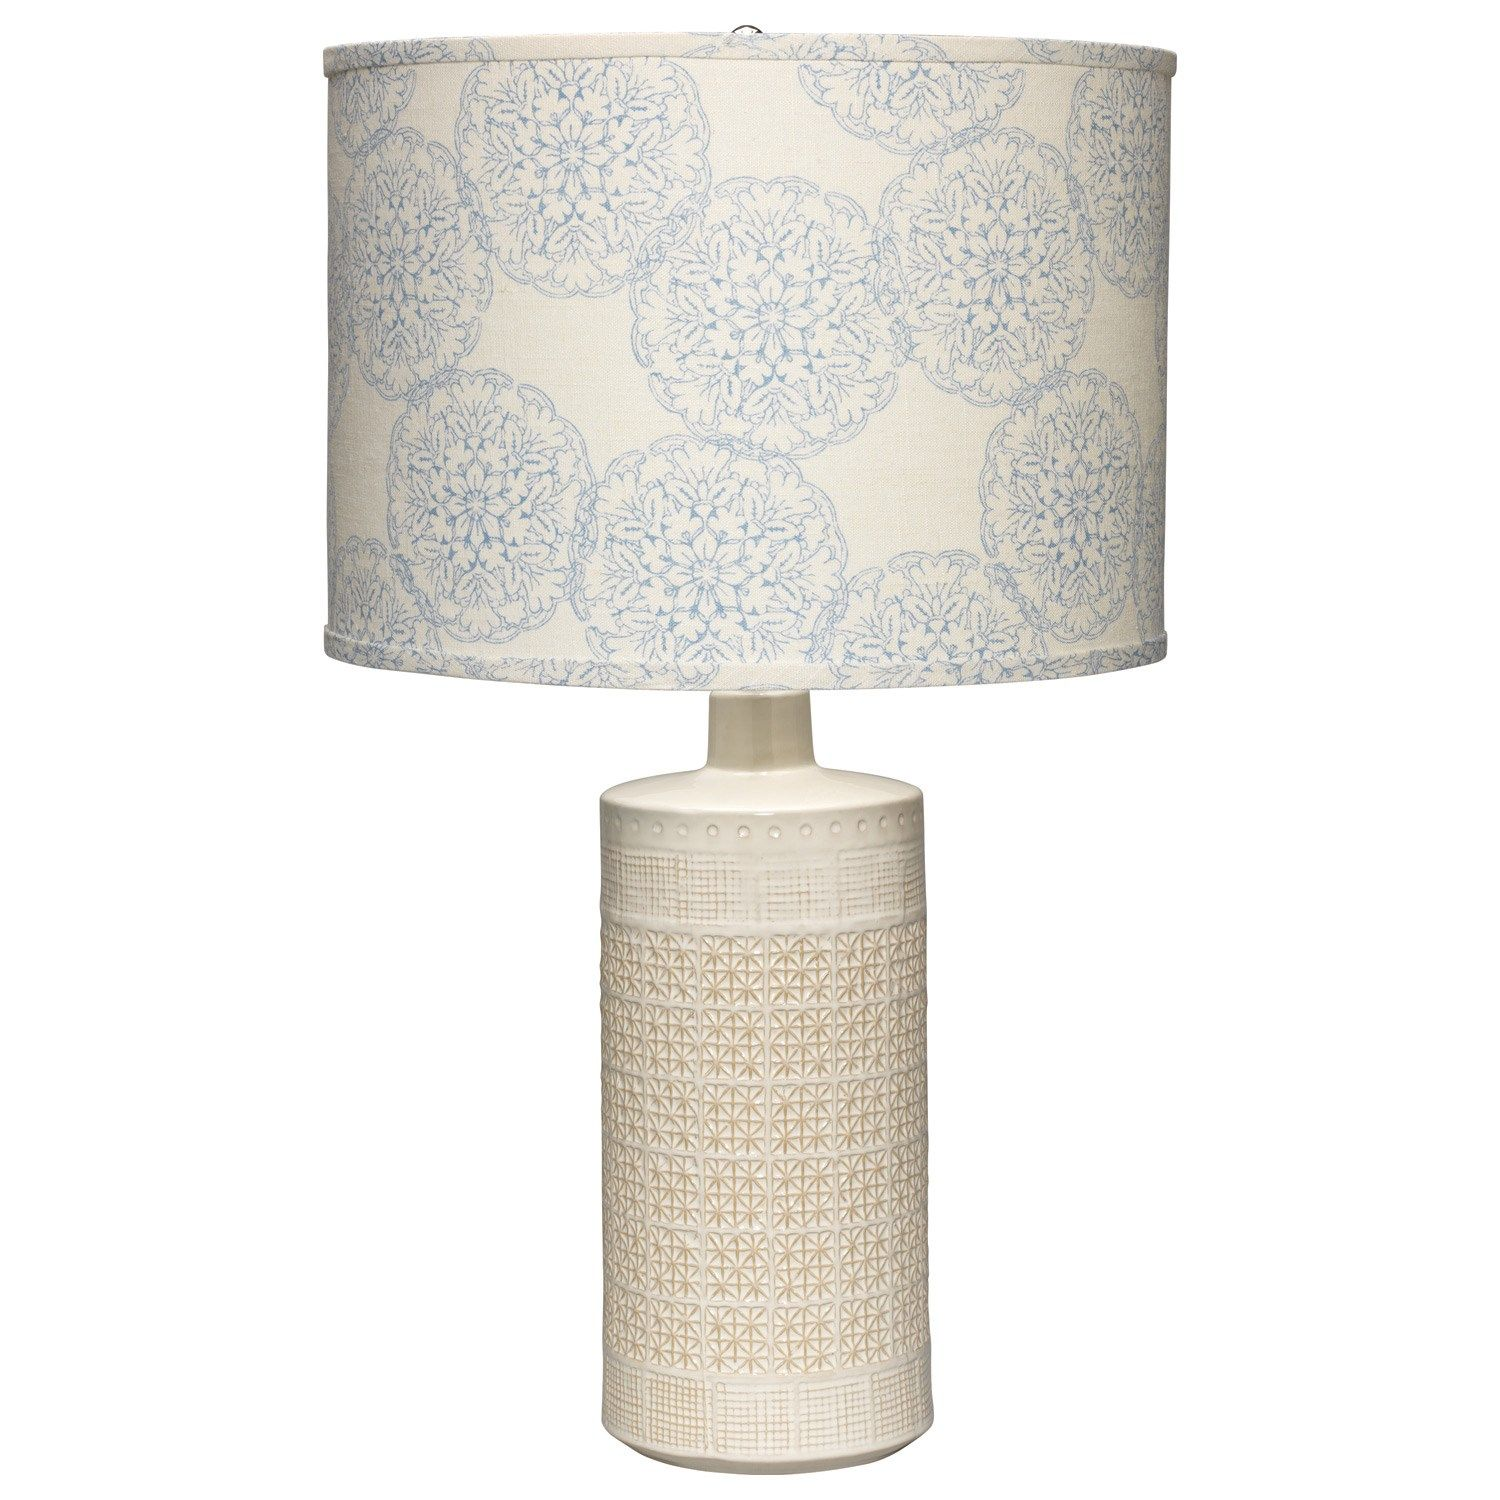 jamie young lighting table lamp base astral white  illuminating  - jamie young lighting table lamp base astral white